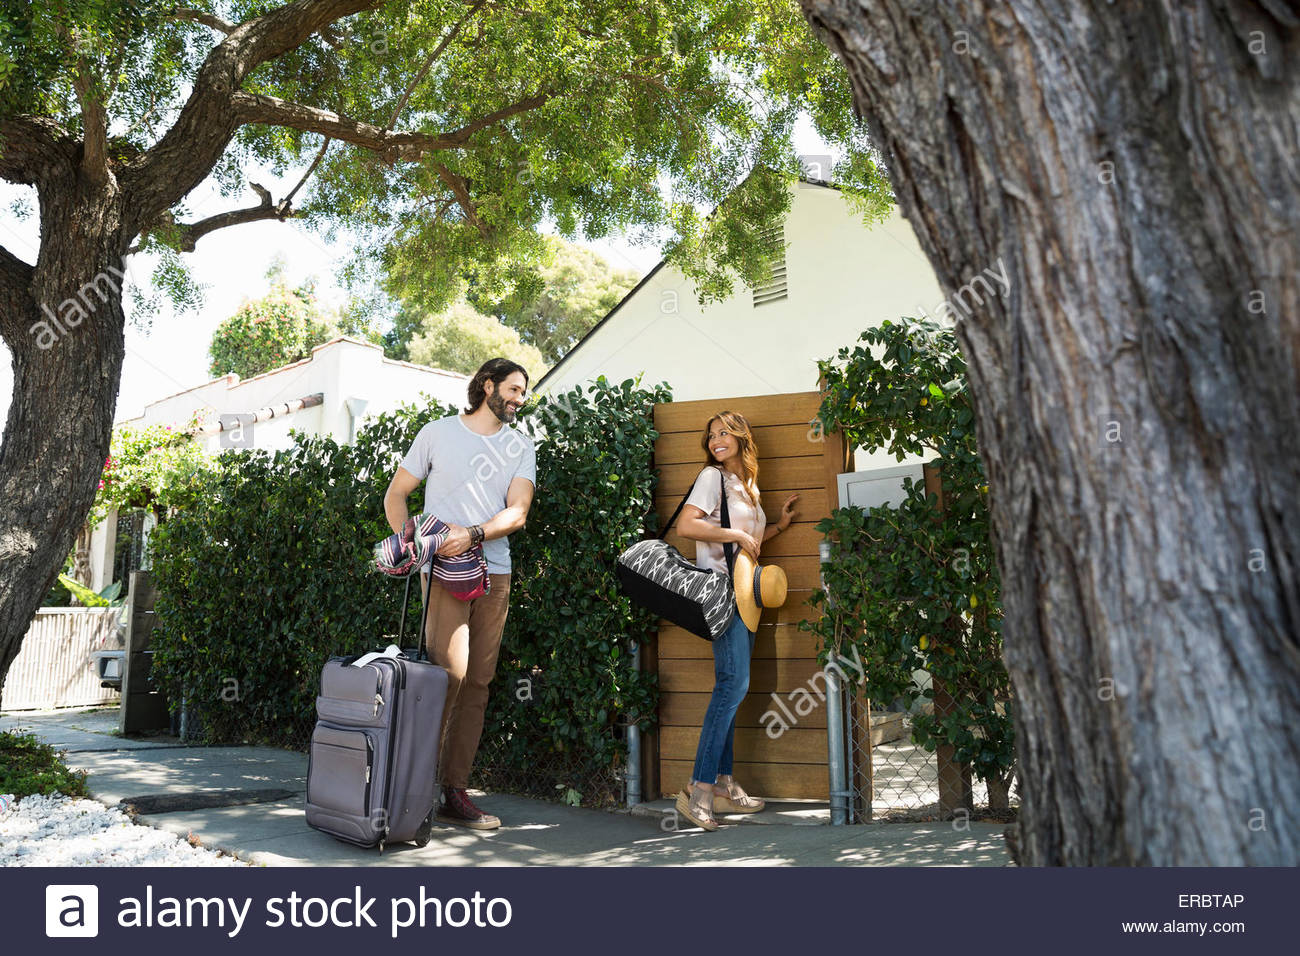 Couple with luggage arriving at vacation house gate - Stock Image